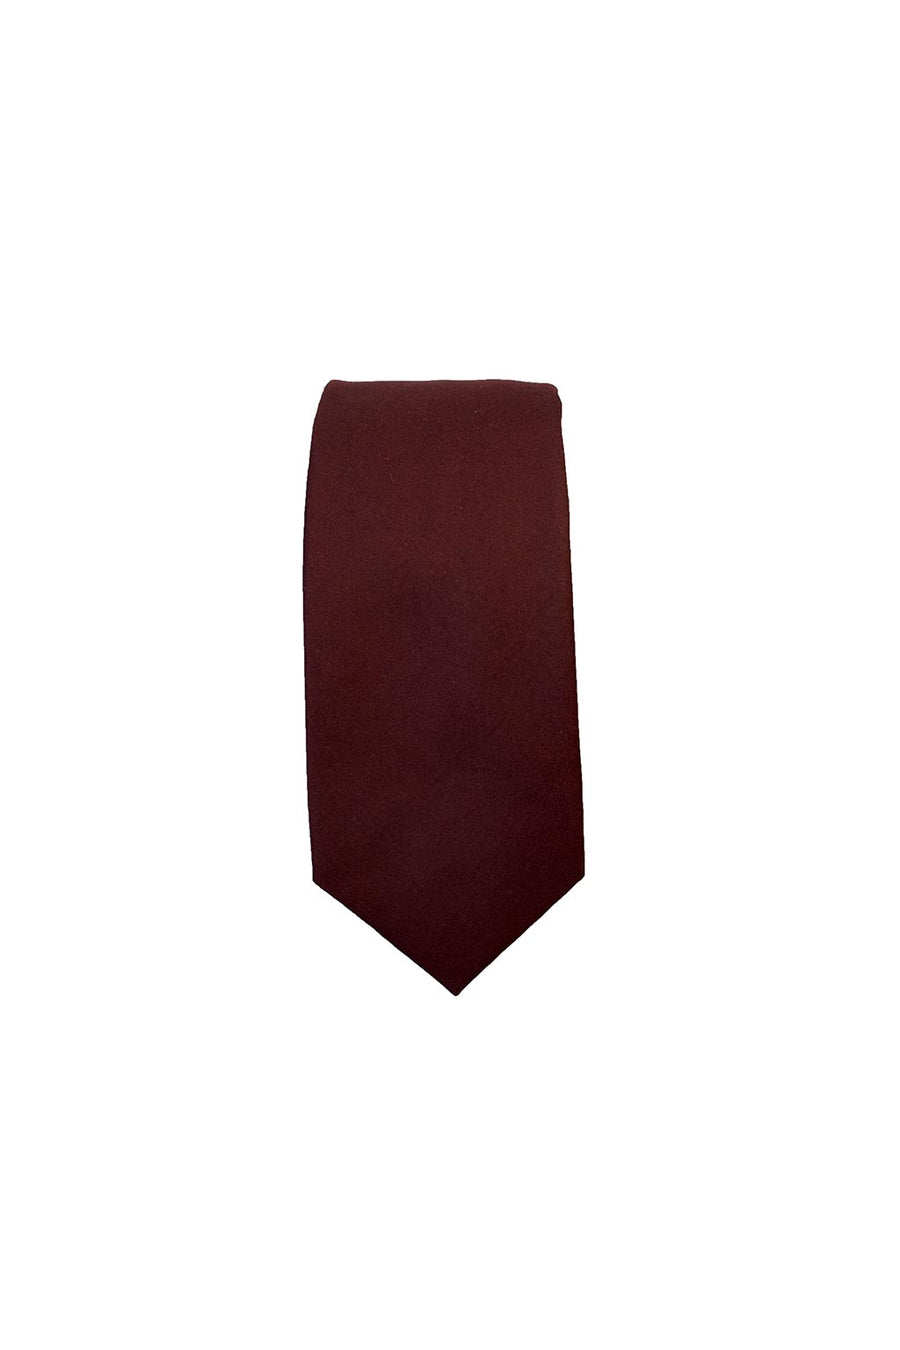 HEW Clothing Tie in Plum